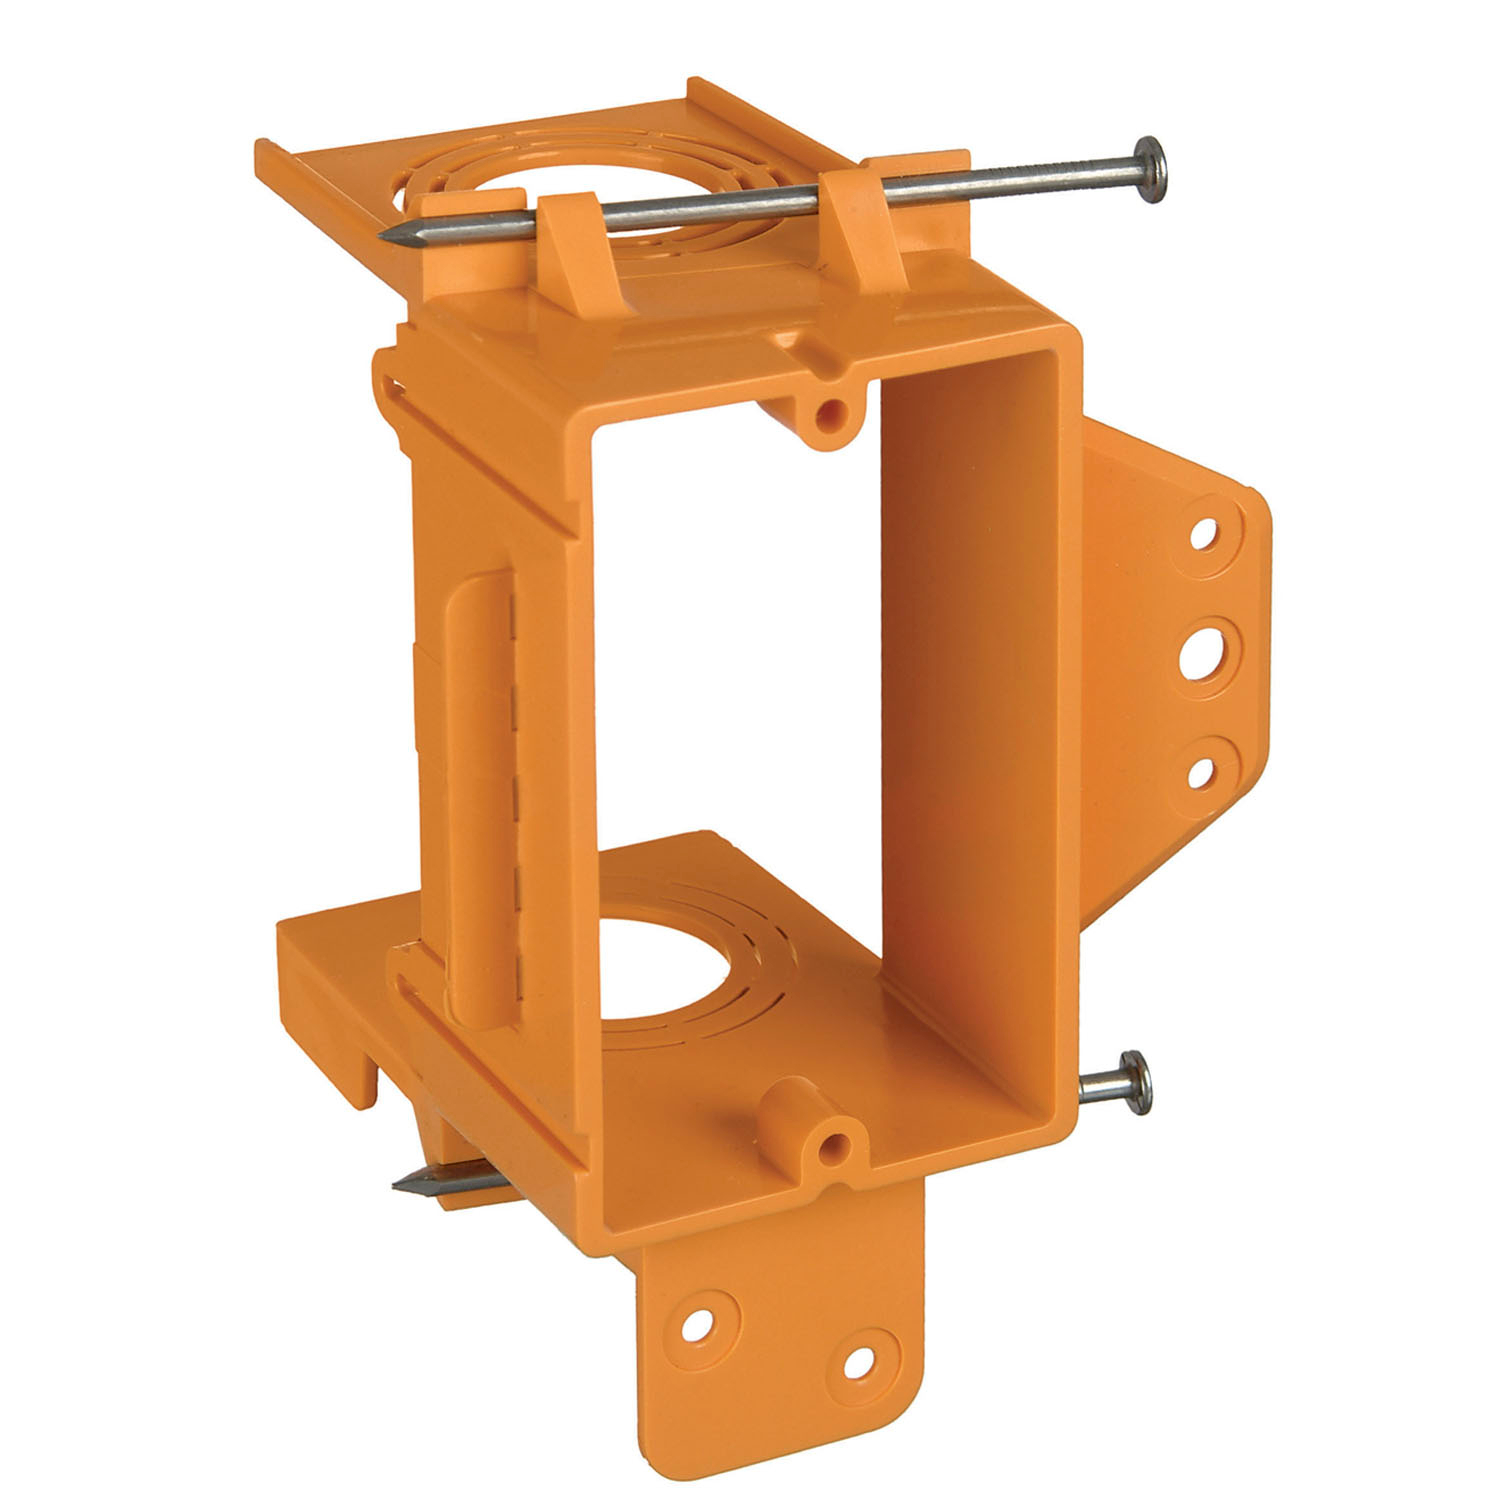 CAR SC100A 1G Low-Voltage Bracket, Resi-Rings, Orange, Non-Metallic cs=24